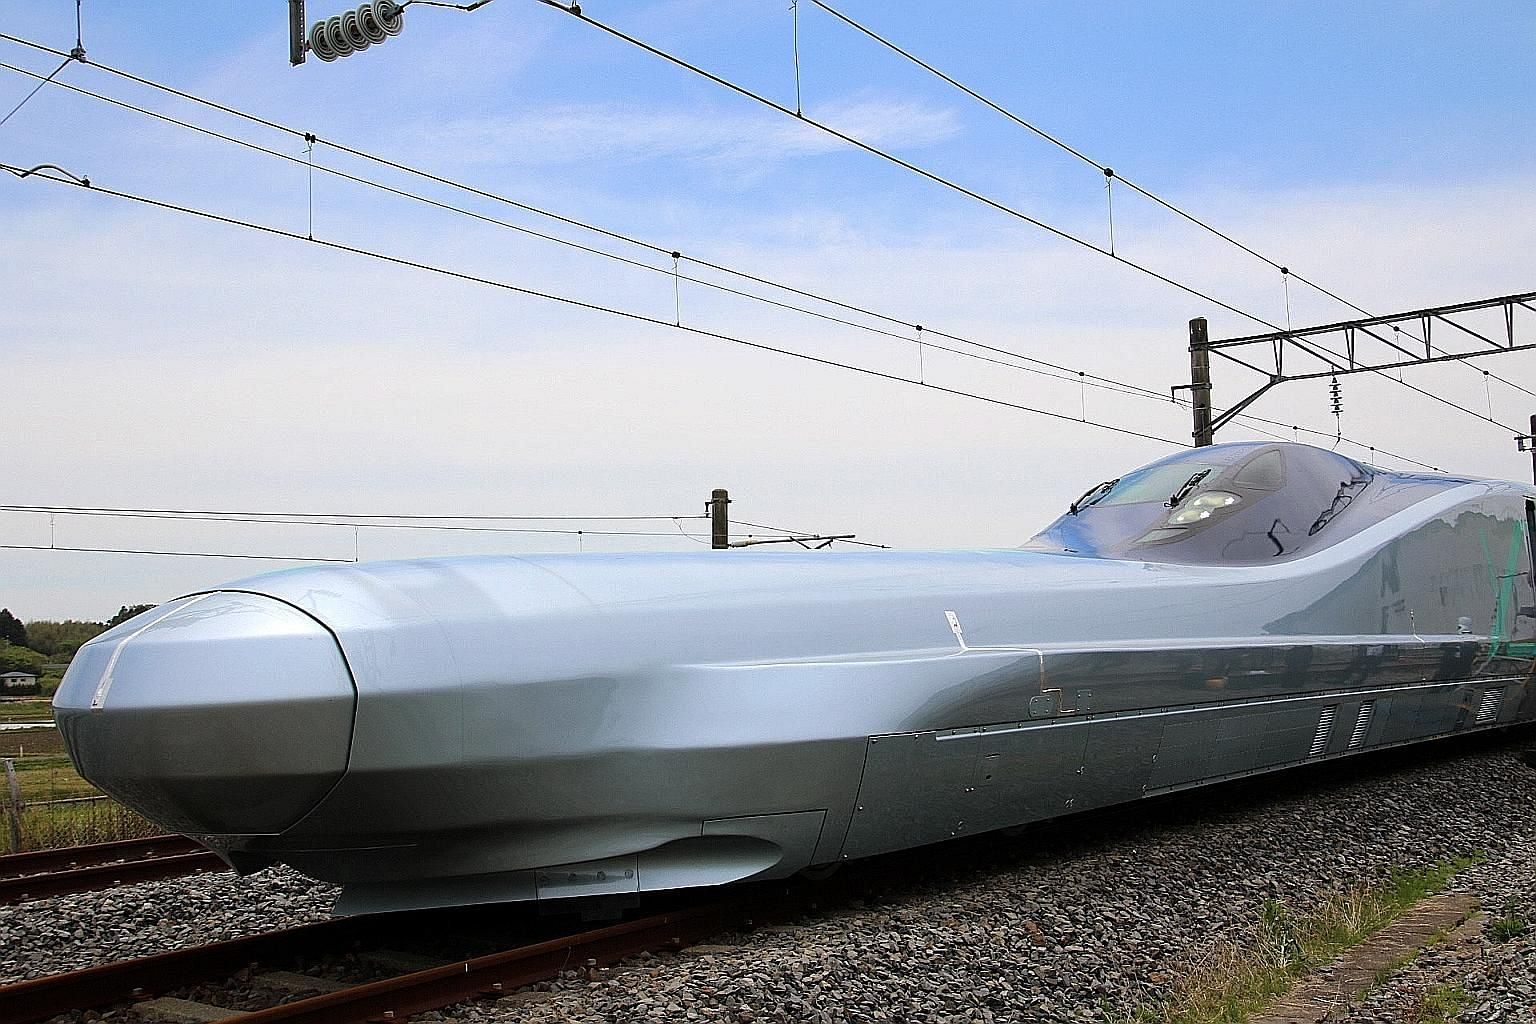 The 10-car bullet train, called the Alfa-X, is scheduled to go into service in 2030 and is capable of speeds of as much as 400kmh.